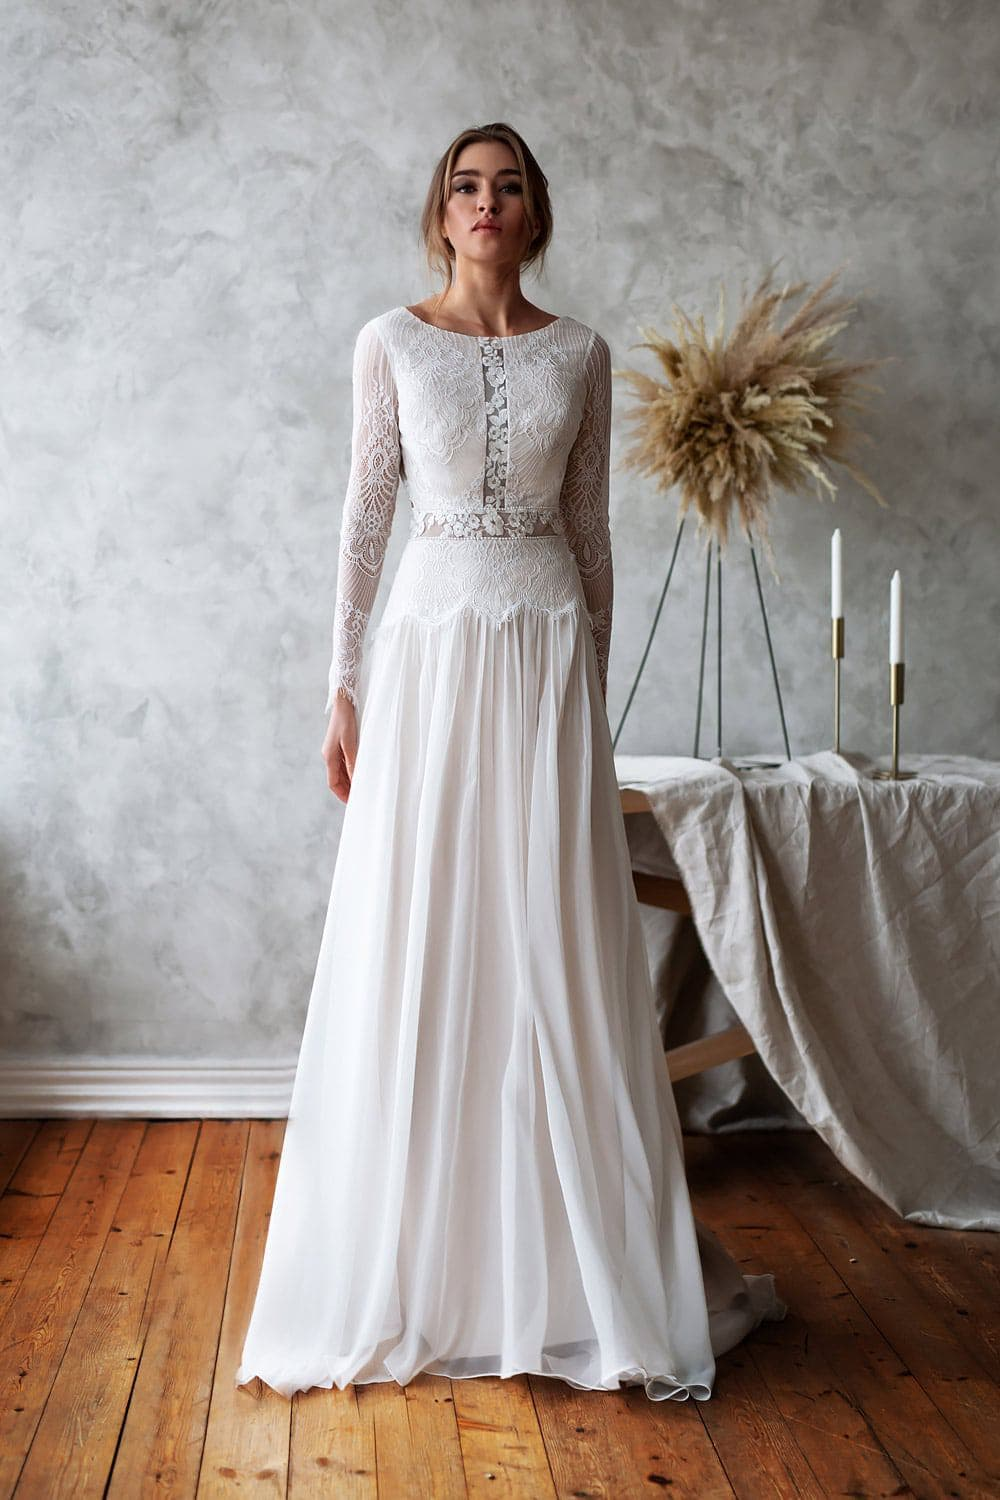 boho wedding dress wedding dress uk boho wedding dress bridal shop near me 116